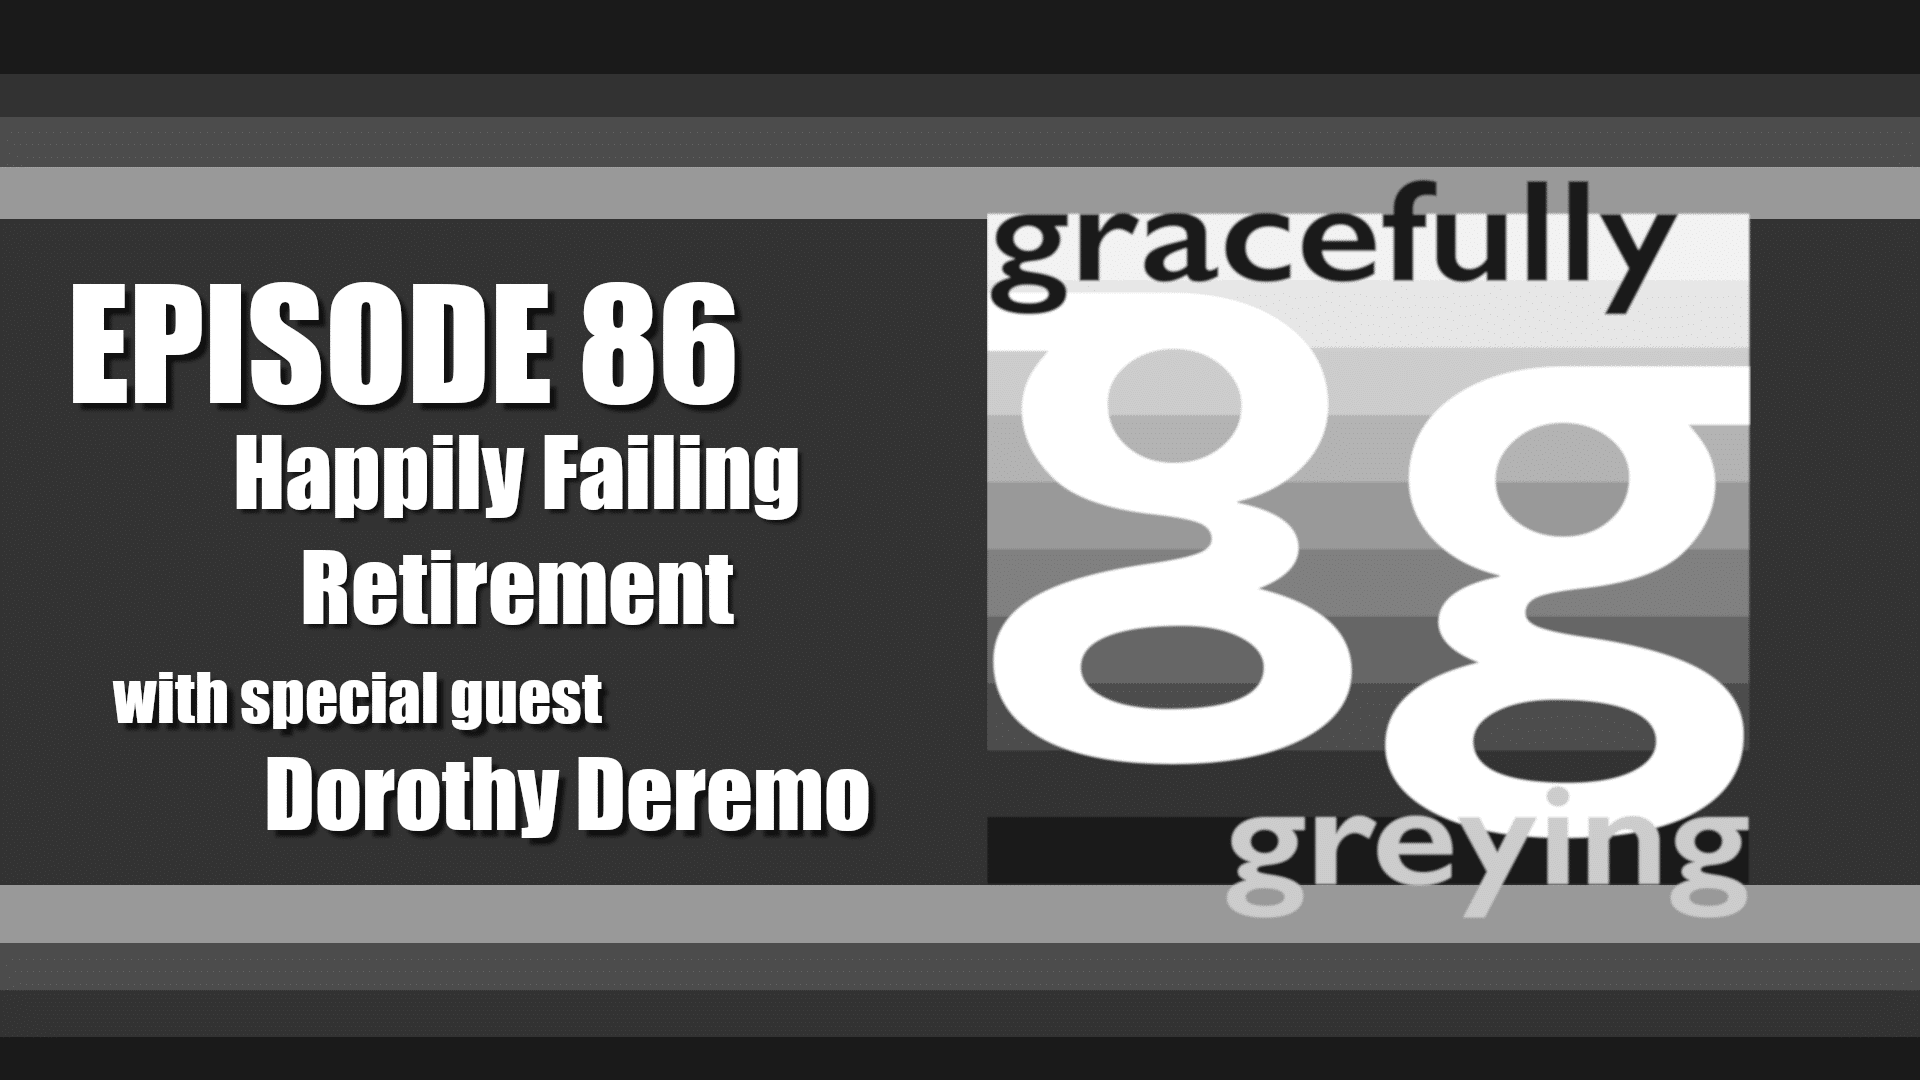 Gracefully Greying - Episode 86